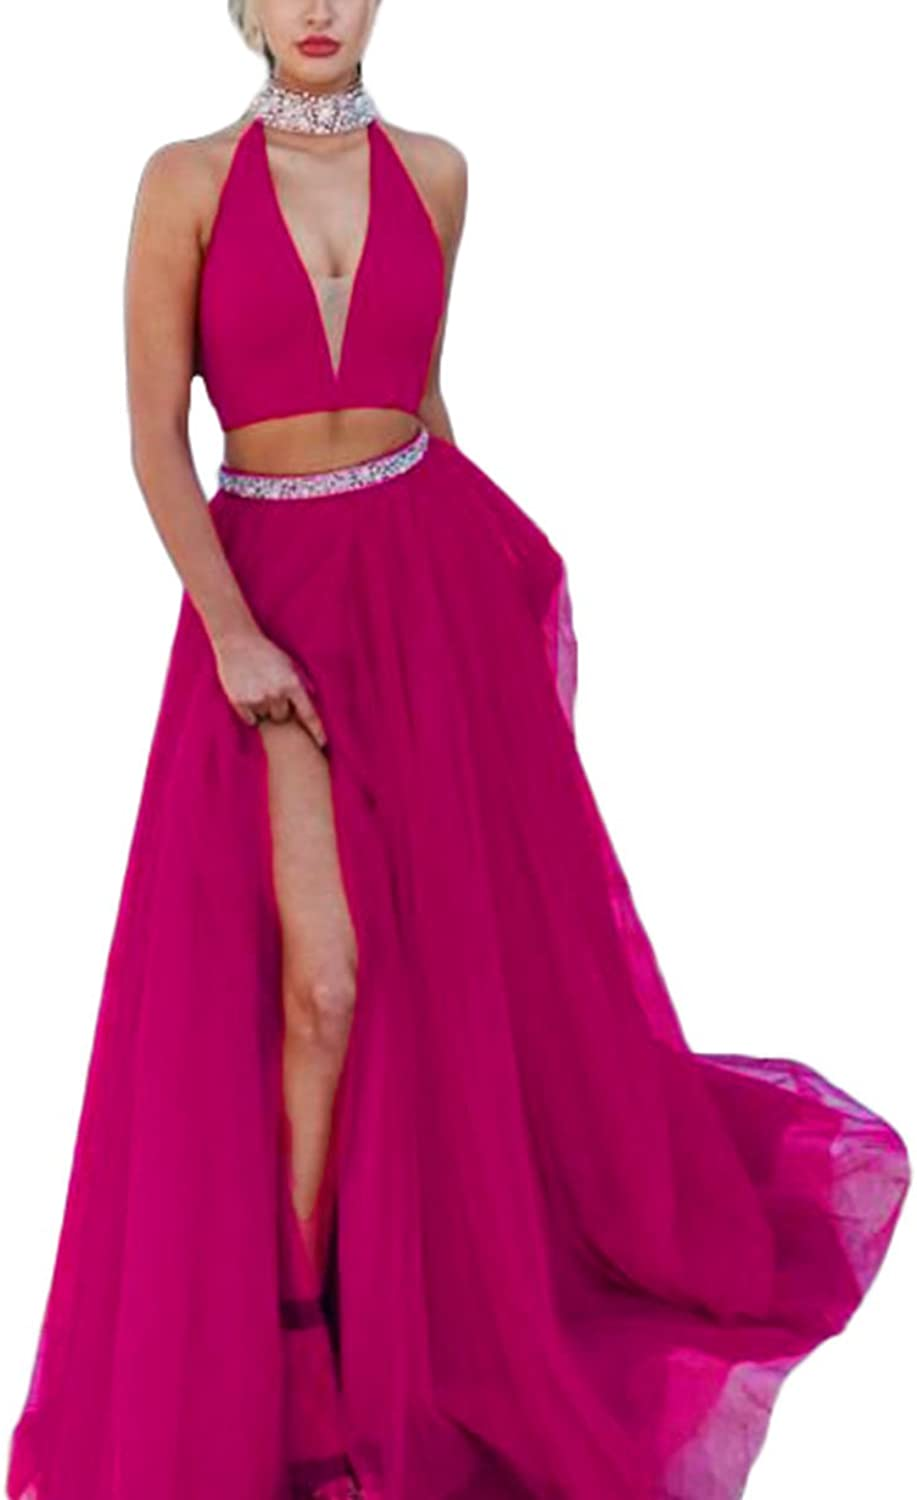 Alilith.Z Women's Halter V Neck Side Slit Beaded Rhinestones Two Piece Prom Dresses Formal Gowns and Evening Dresses